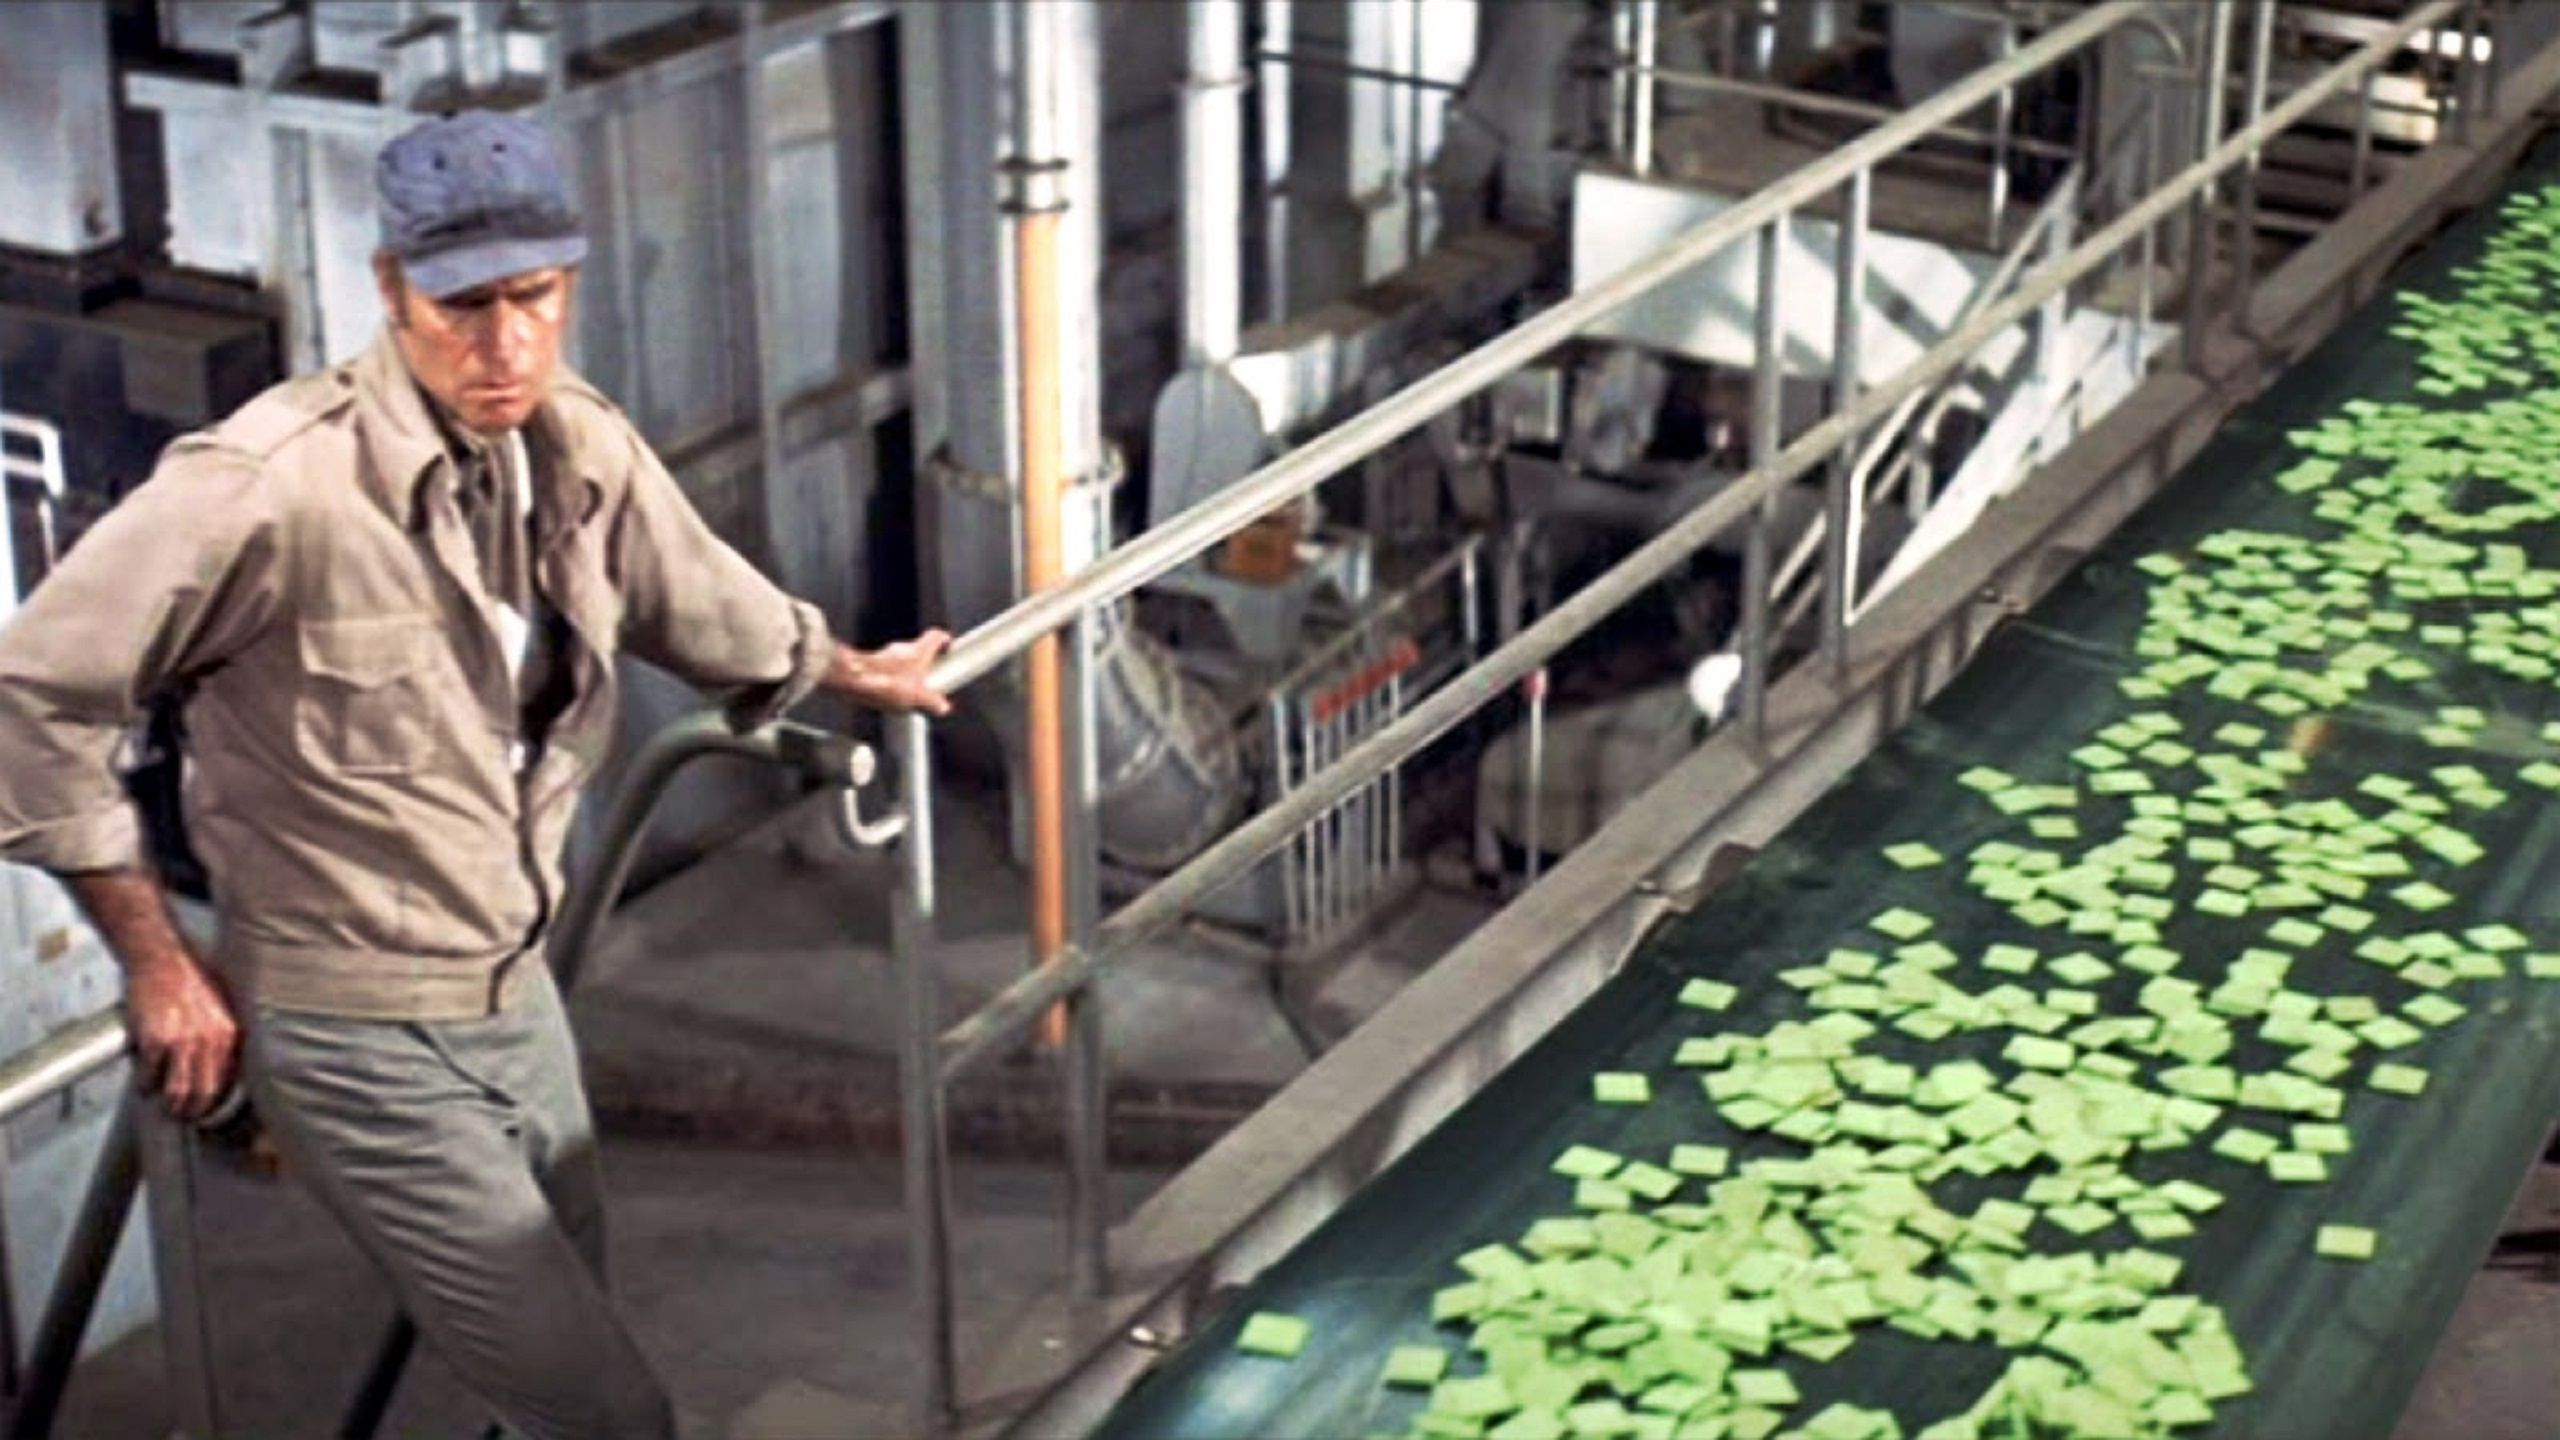 Soylent Green production